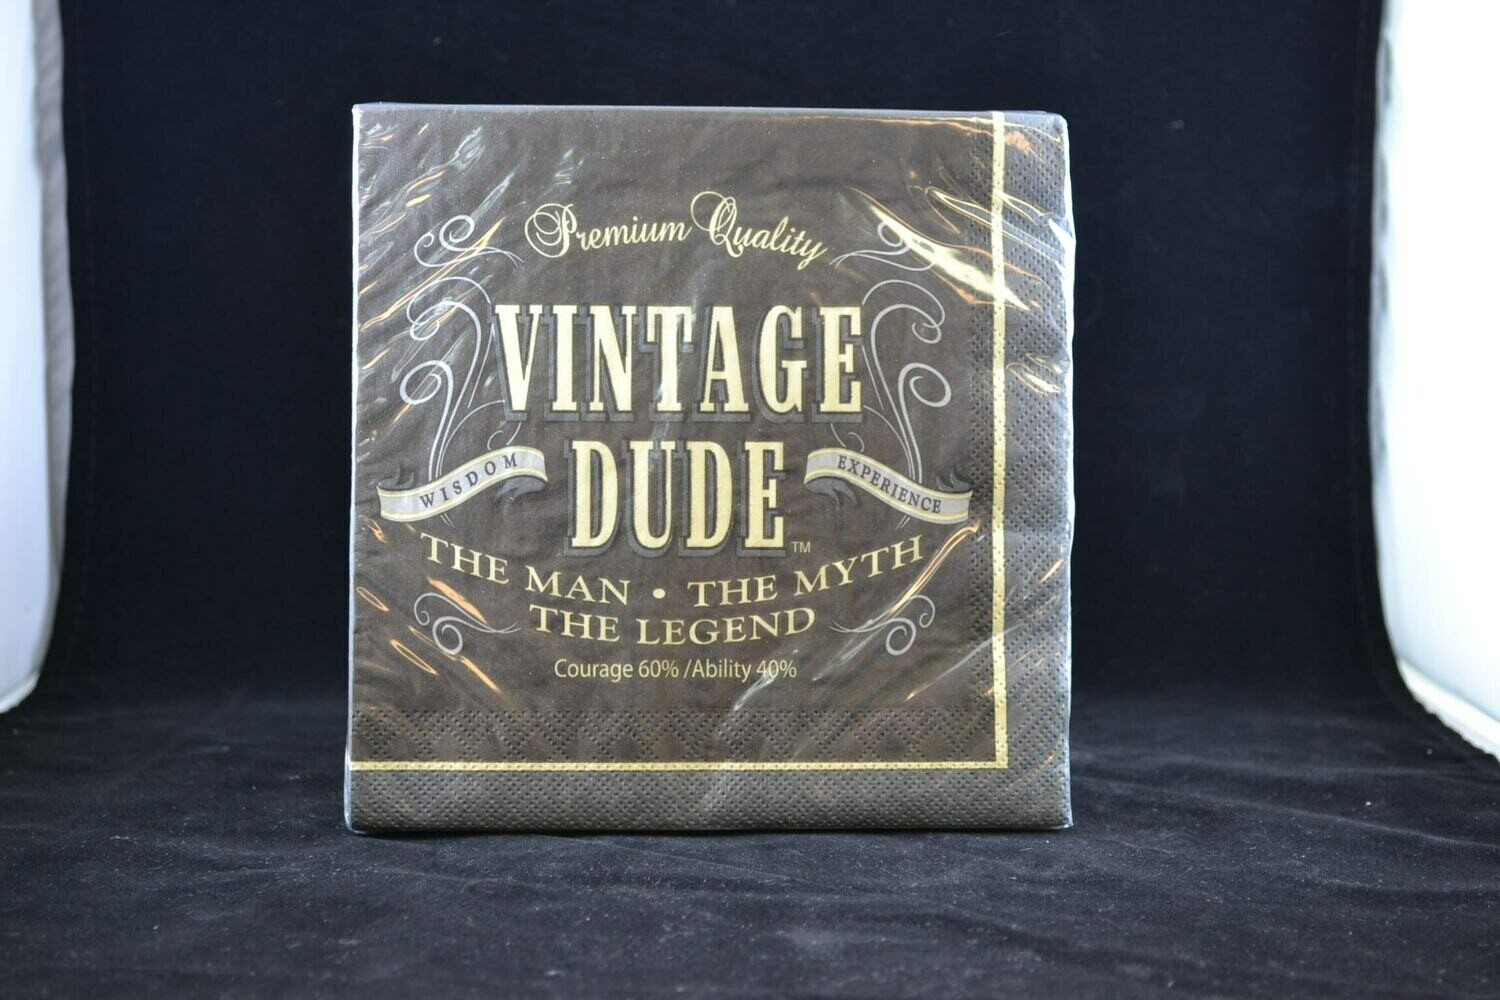 Vintage Dude Lunch Napkin